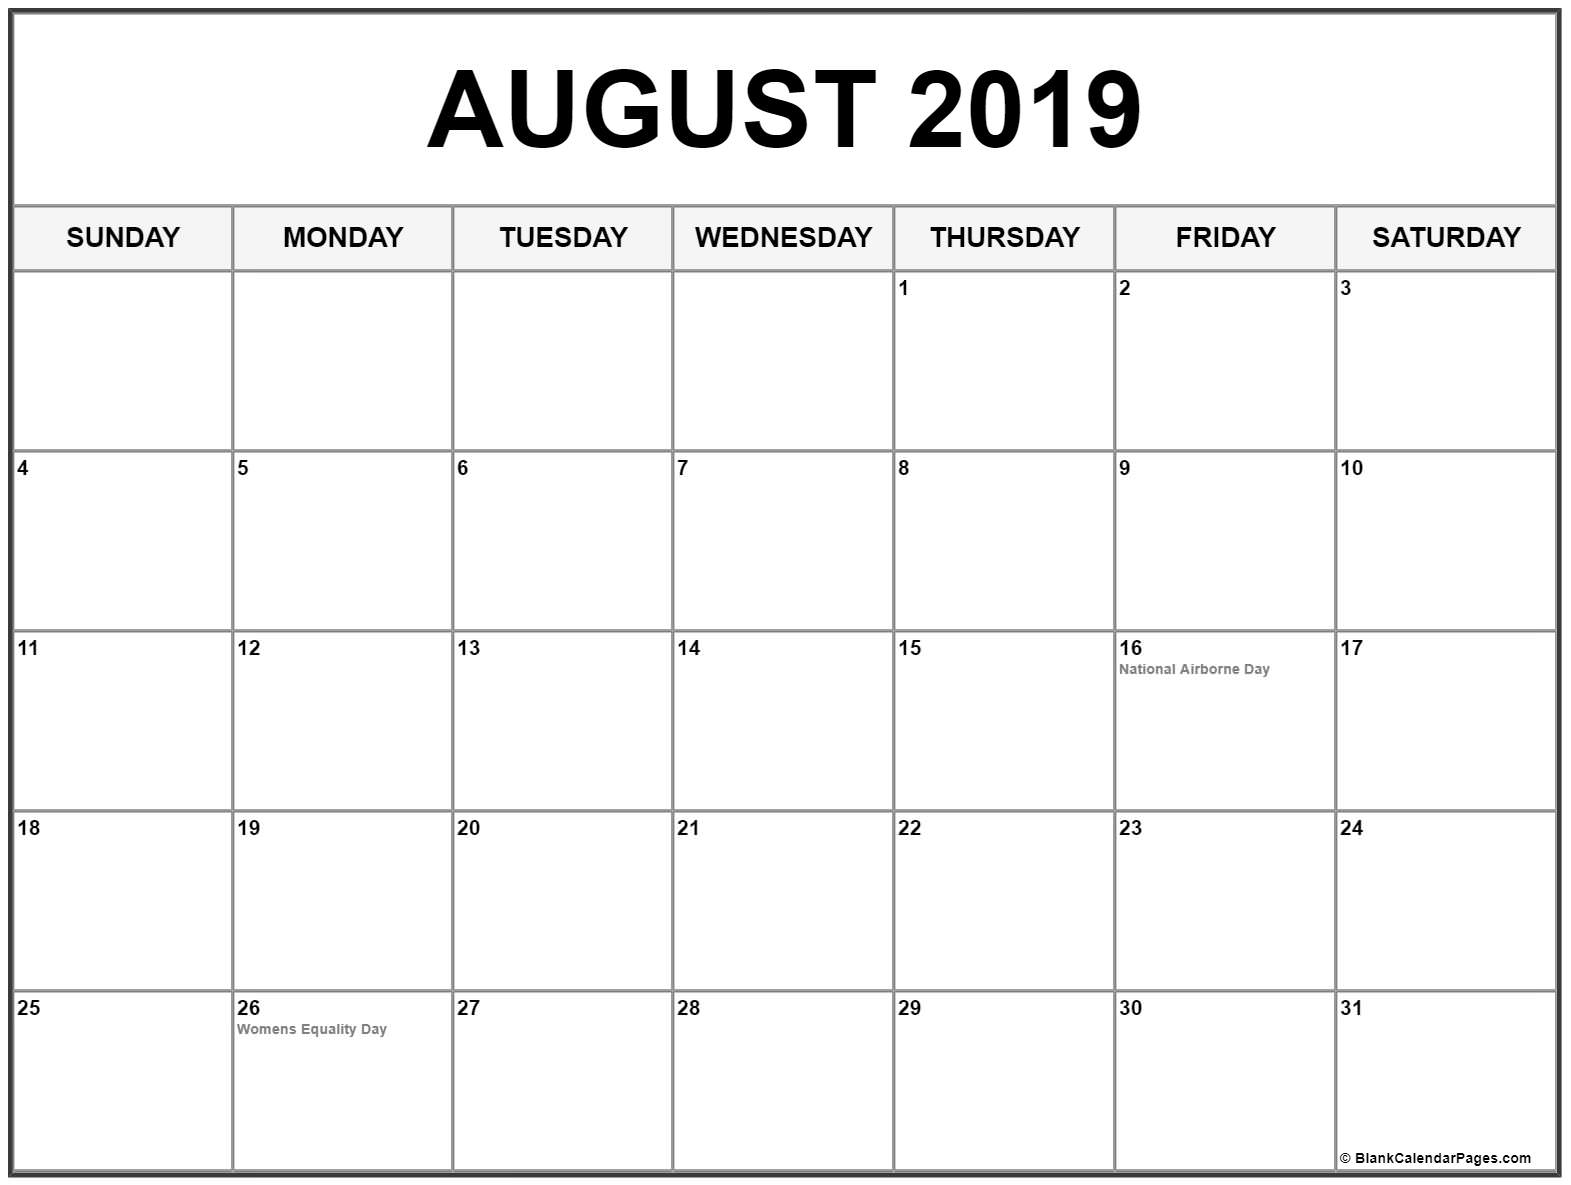 photograph about Free August Calendar Printable named ✅ Blank August 2019 Calendar Printable Totally free Obtain